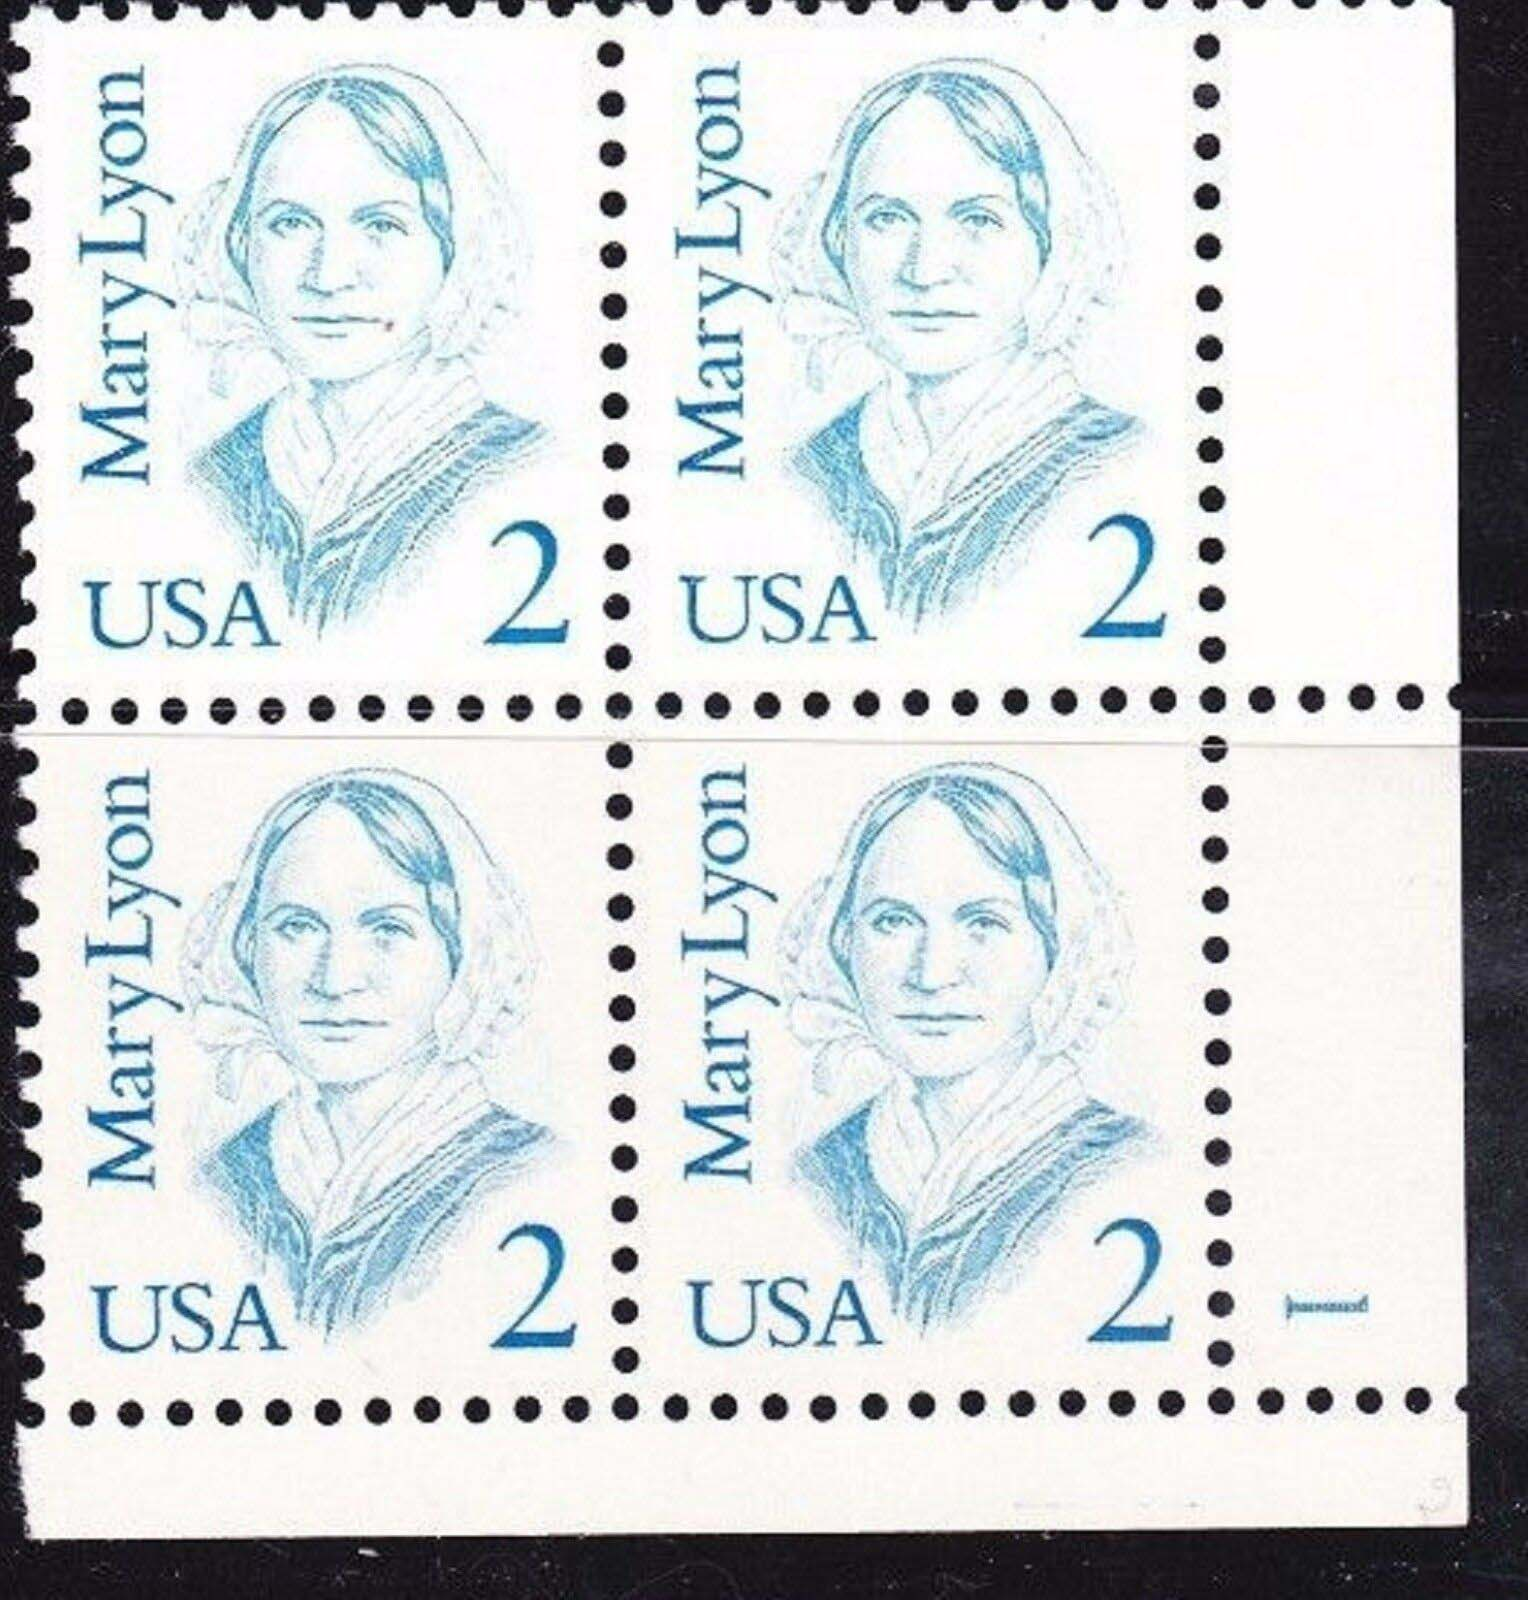 "Scott 2169 Plate Block (2 cents) <p> <a href=""/images/USA-Scott-2169-PB.jpg""><font color=green><b>View the image</a></b></font>"